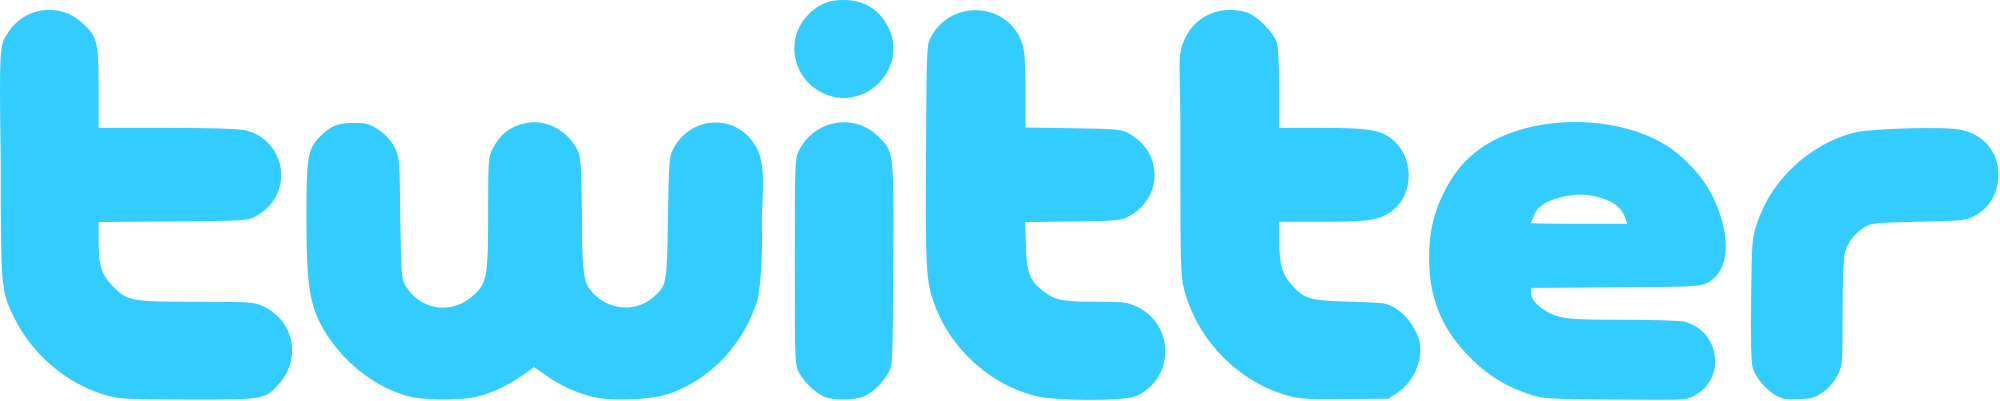 twitter-logo-png-open-2000.png